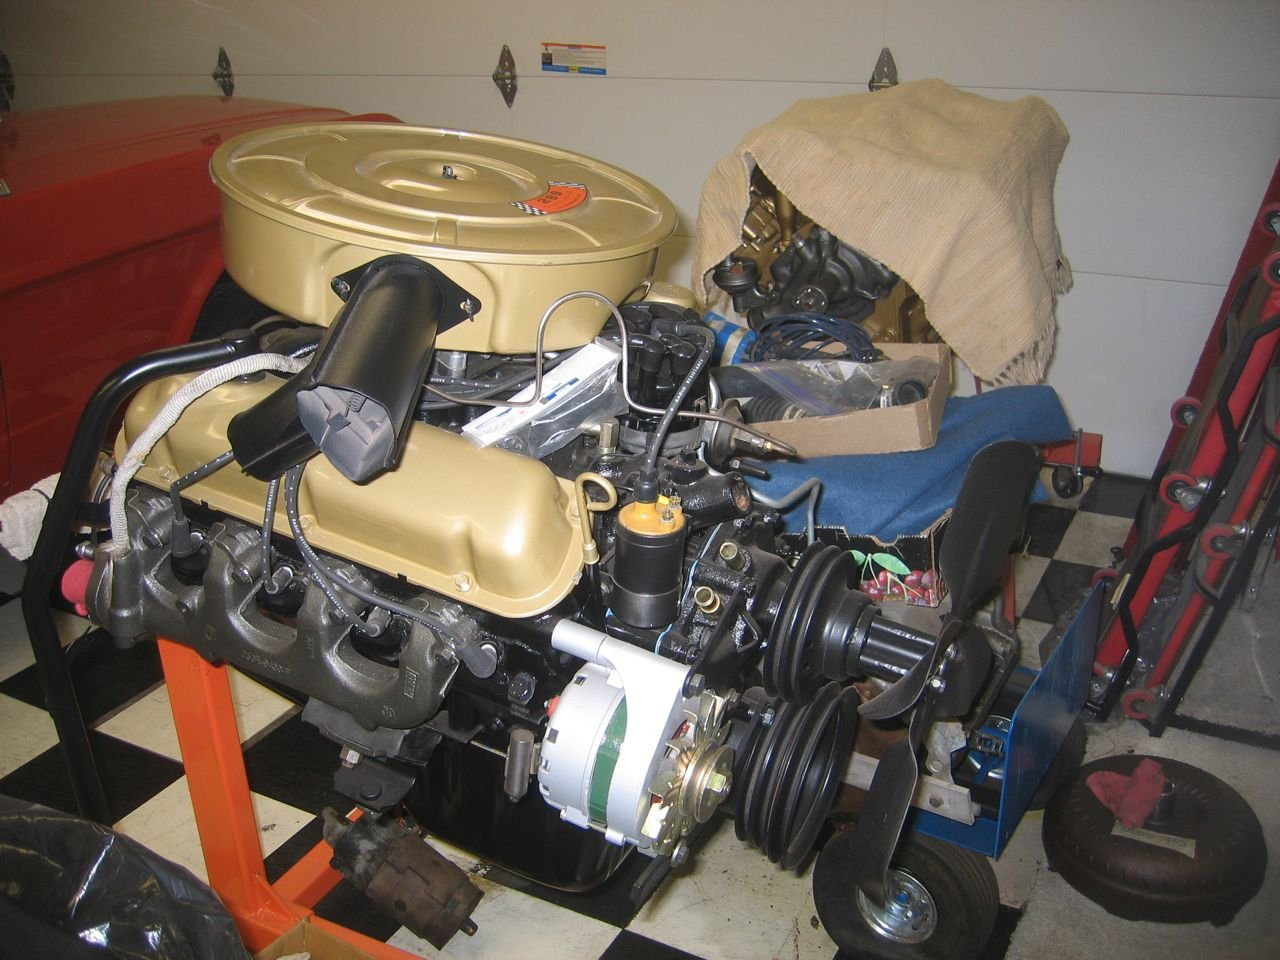 1969 ford mustang wiring diagram 2000 vw jetta audio 260 v8 air cleaner ? - forum